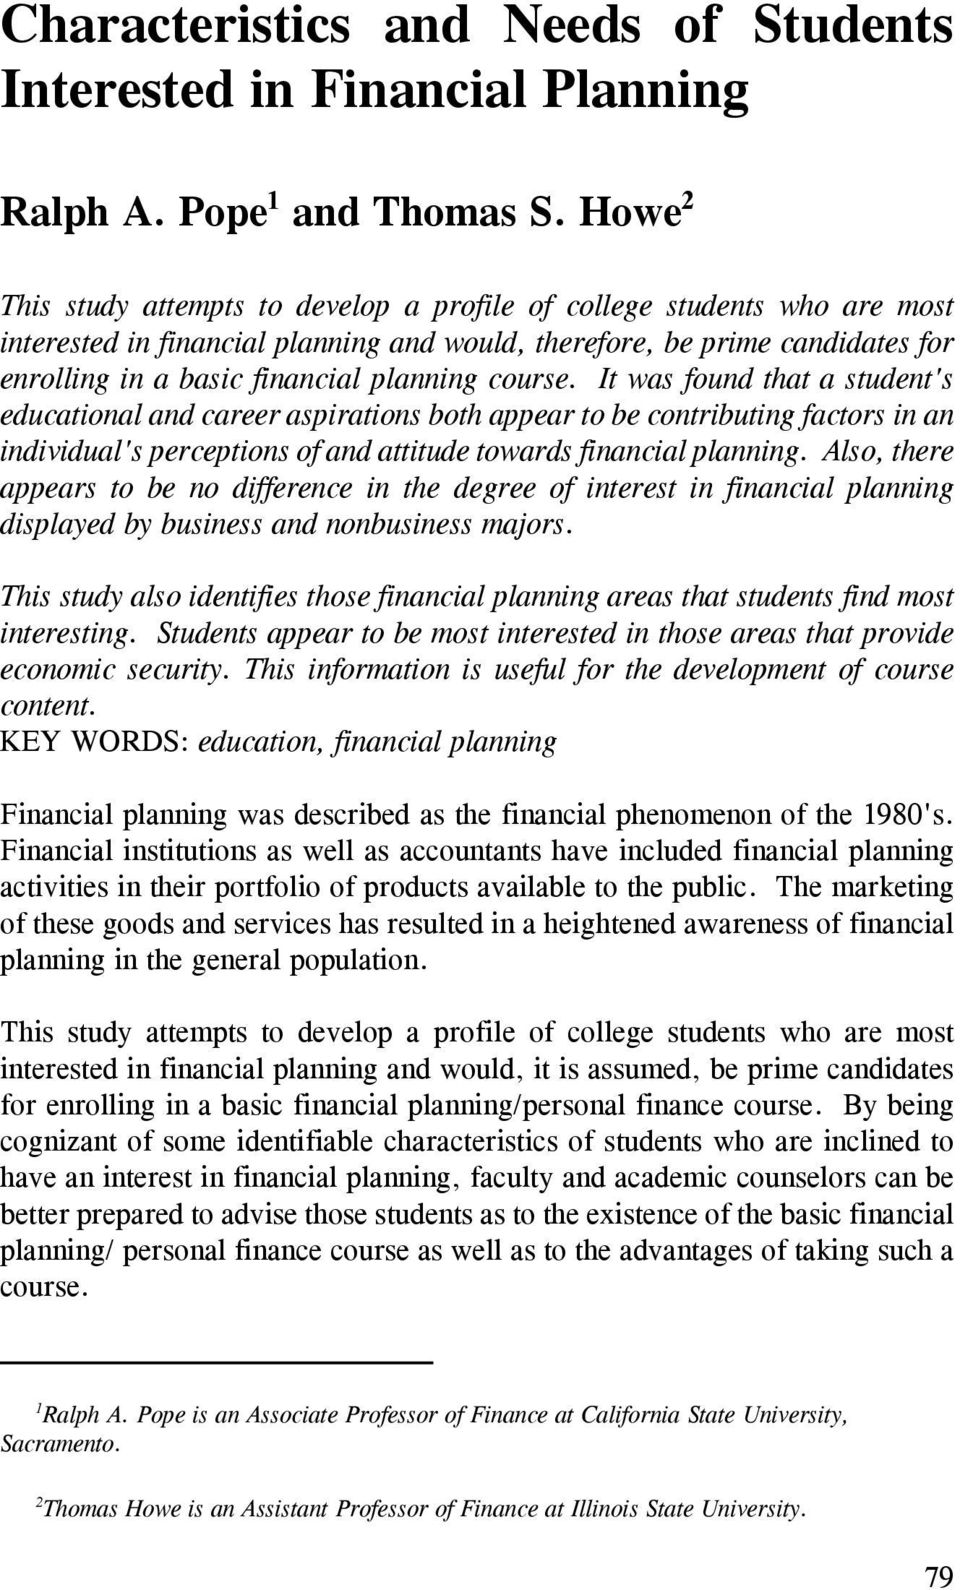 course. It was found that a student's educational and career aspirations both appear to be contributing factors in an individual's perceptions of and attitude towards financial planning.